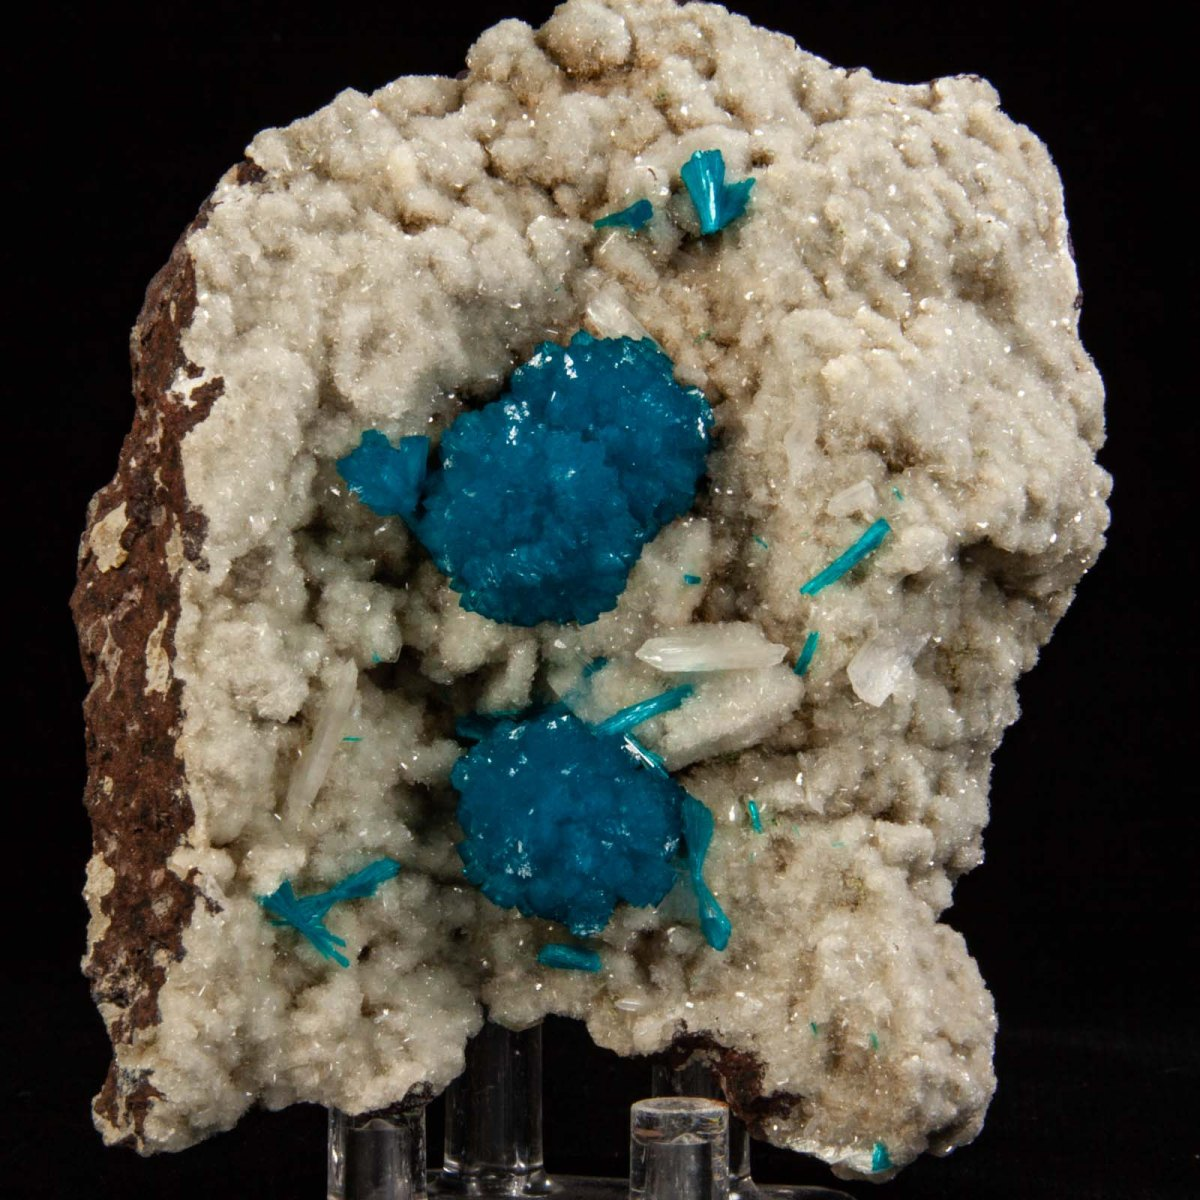 Cavansite with Stilbite